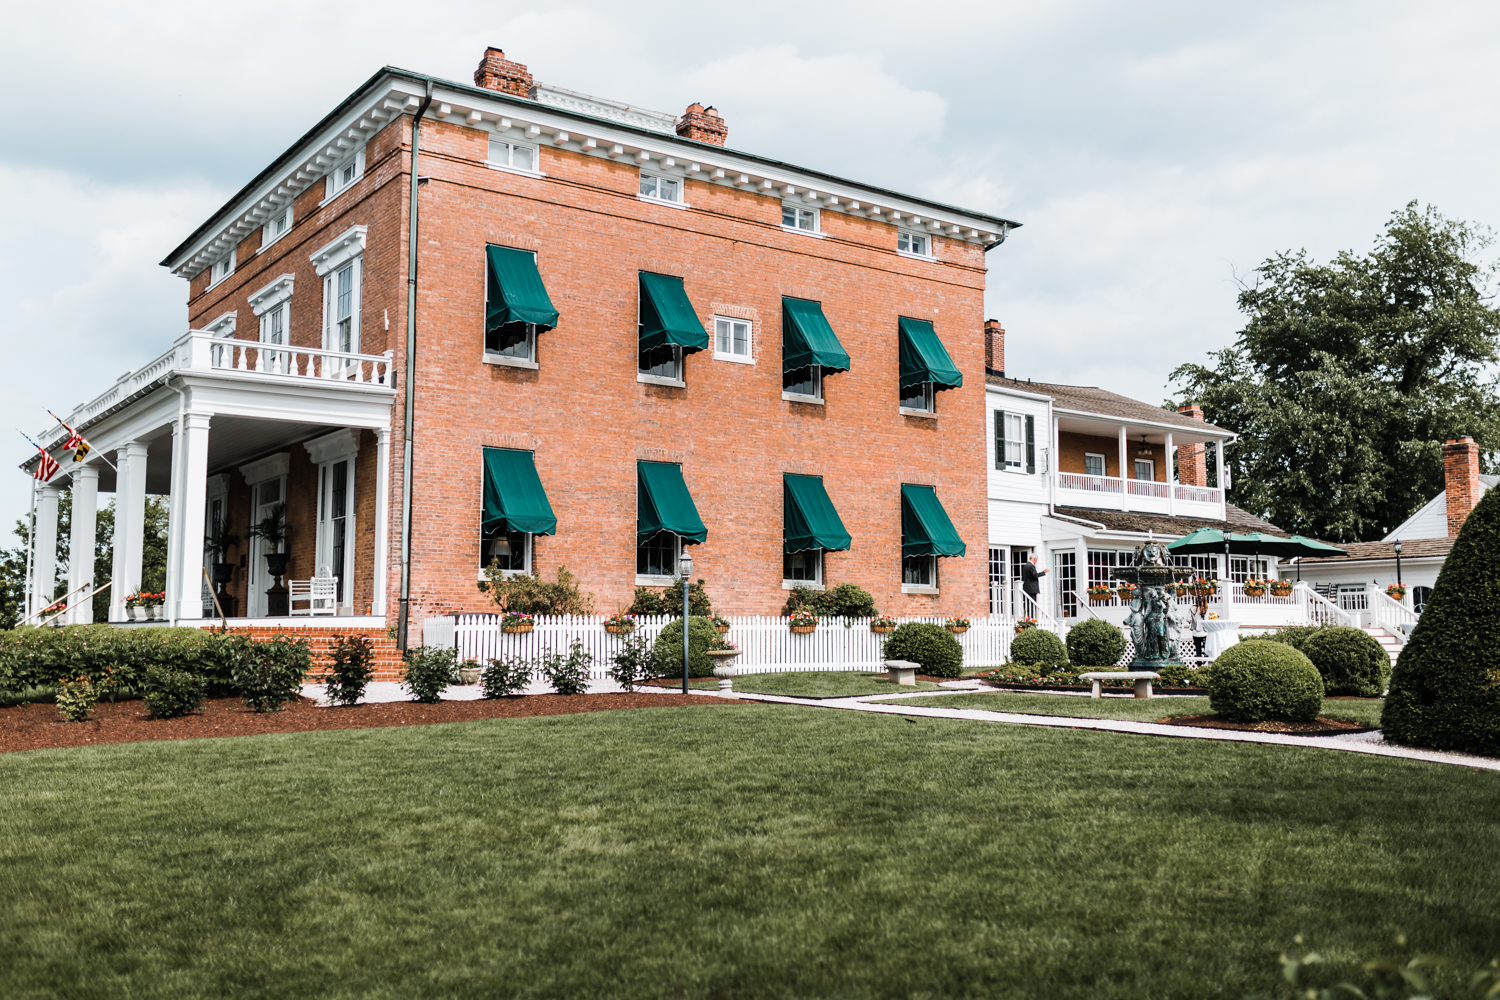 antrim 1844 hotel in Carroll County, Maryland - best wedding venues in Maryland